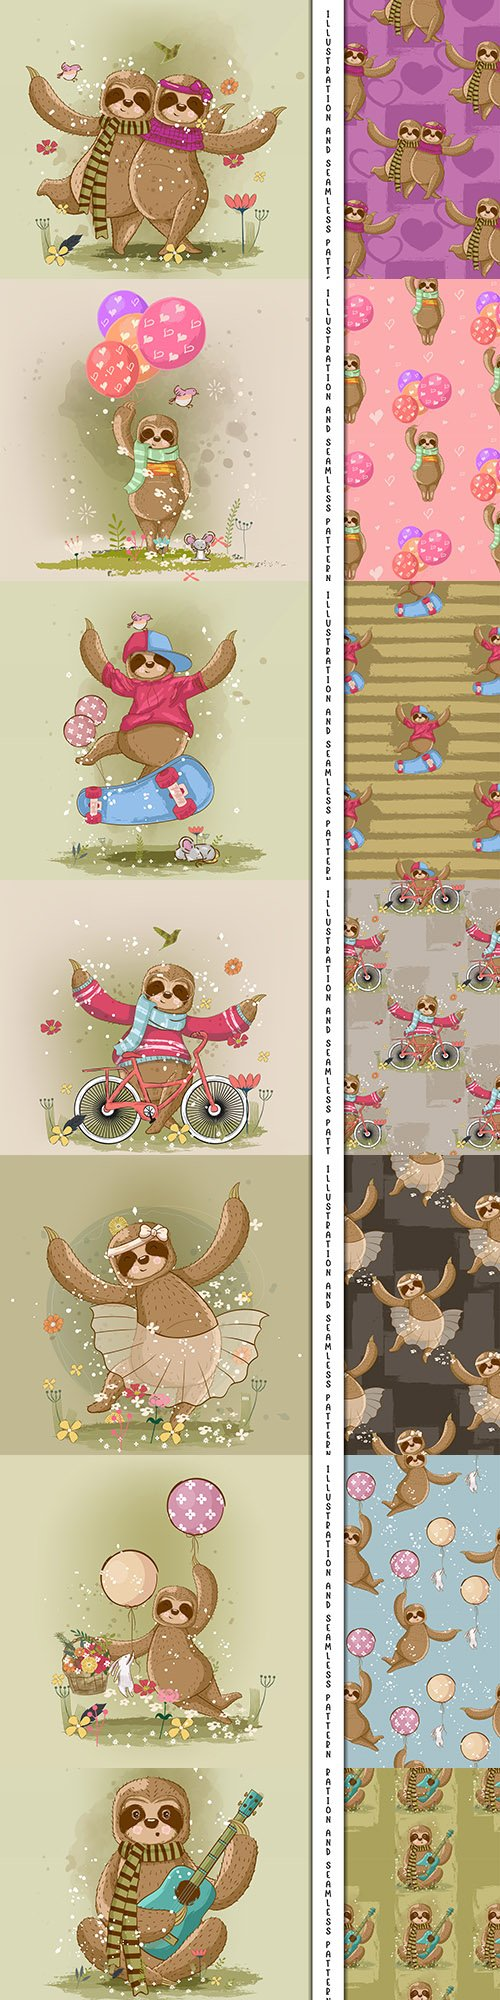 Lazy nice painted cartoon illustrations and pattern